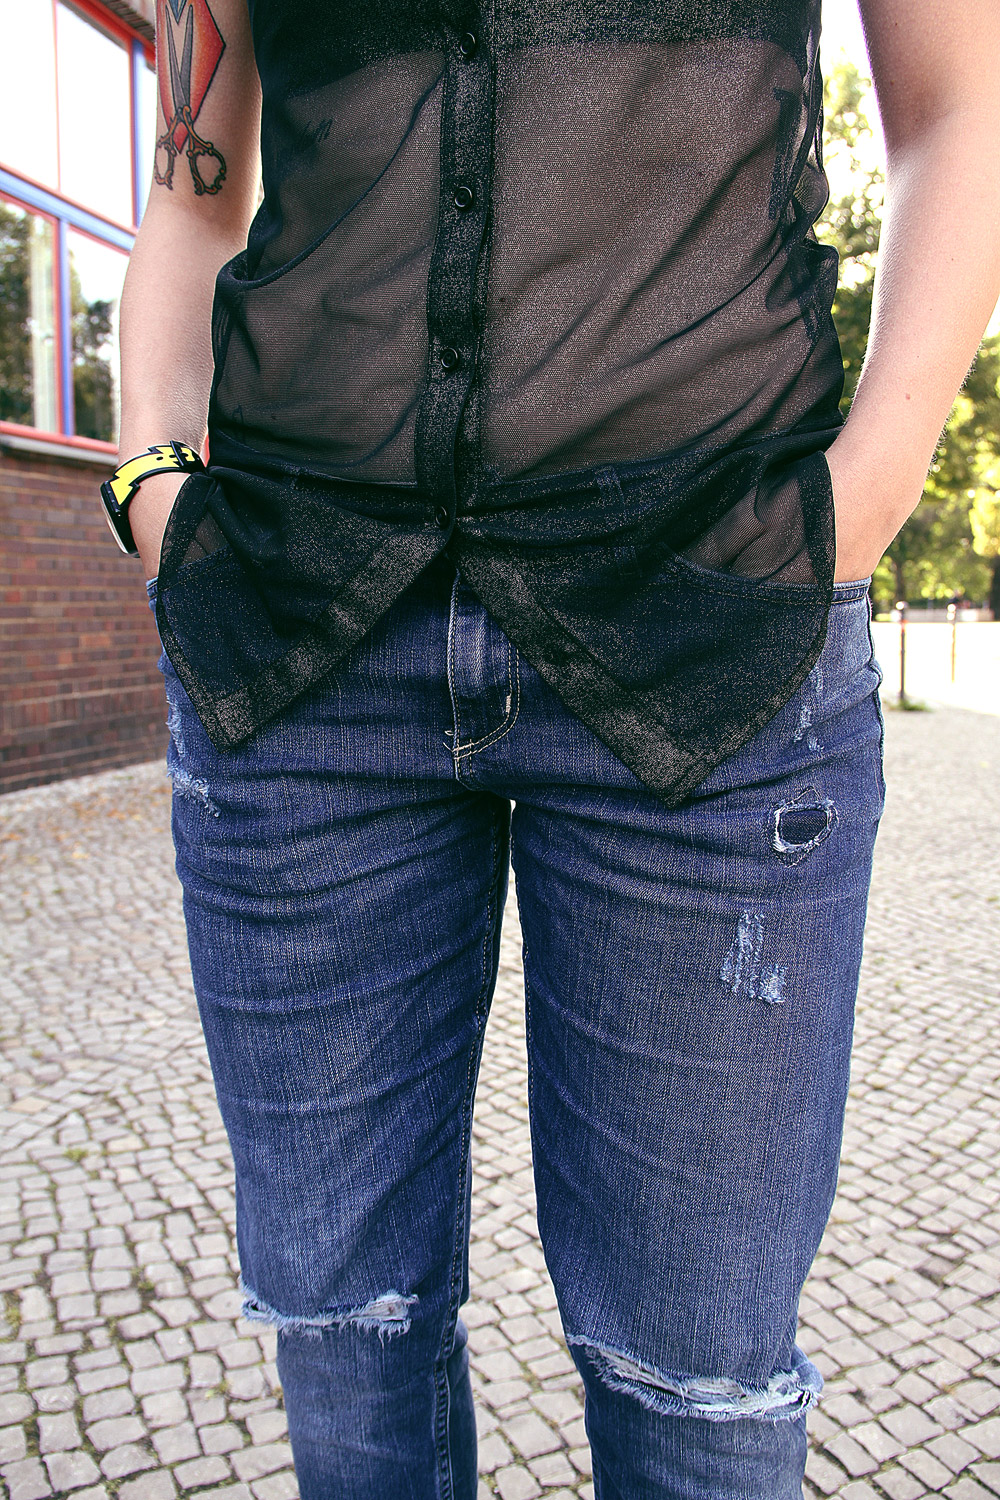 punk, riot girl, swatch, jeremy scott, lightning, blitz, blitzuhr, american apparel, metallic, bustier, leather, transparency, transparenz, transparent, destroyed, ripped, jeans, boyfriend, grey hair, graue haare, weiße haare, white hair, scene hair, baby bangs, pony, bangs, tattoo, tattooed girl, H&M, cardigan, kimono, summer, adidas, varial 2, alternative, alternativ, alternative mode, alternative fashion